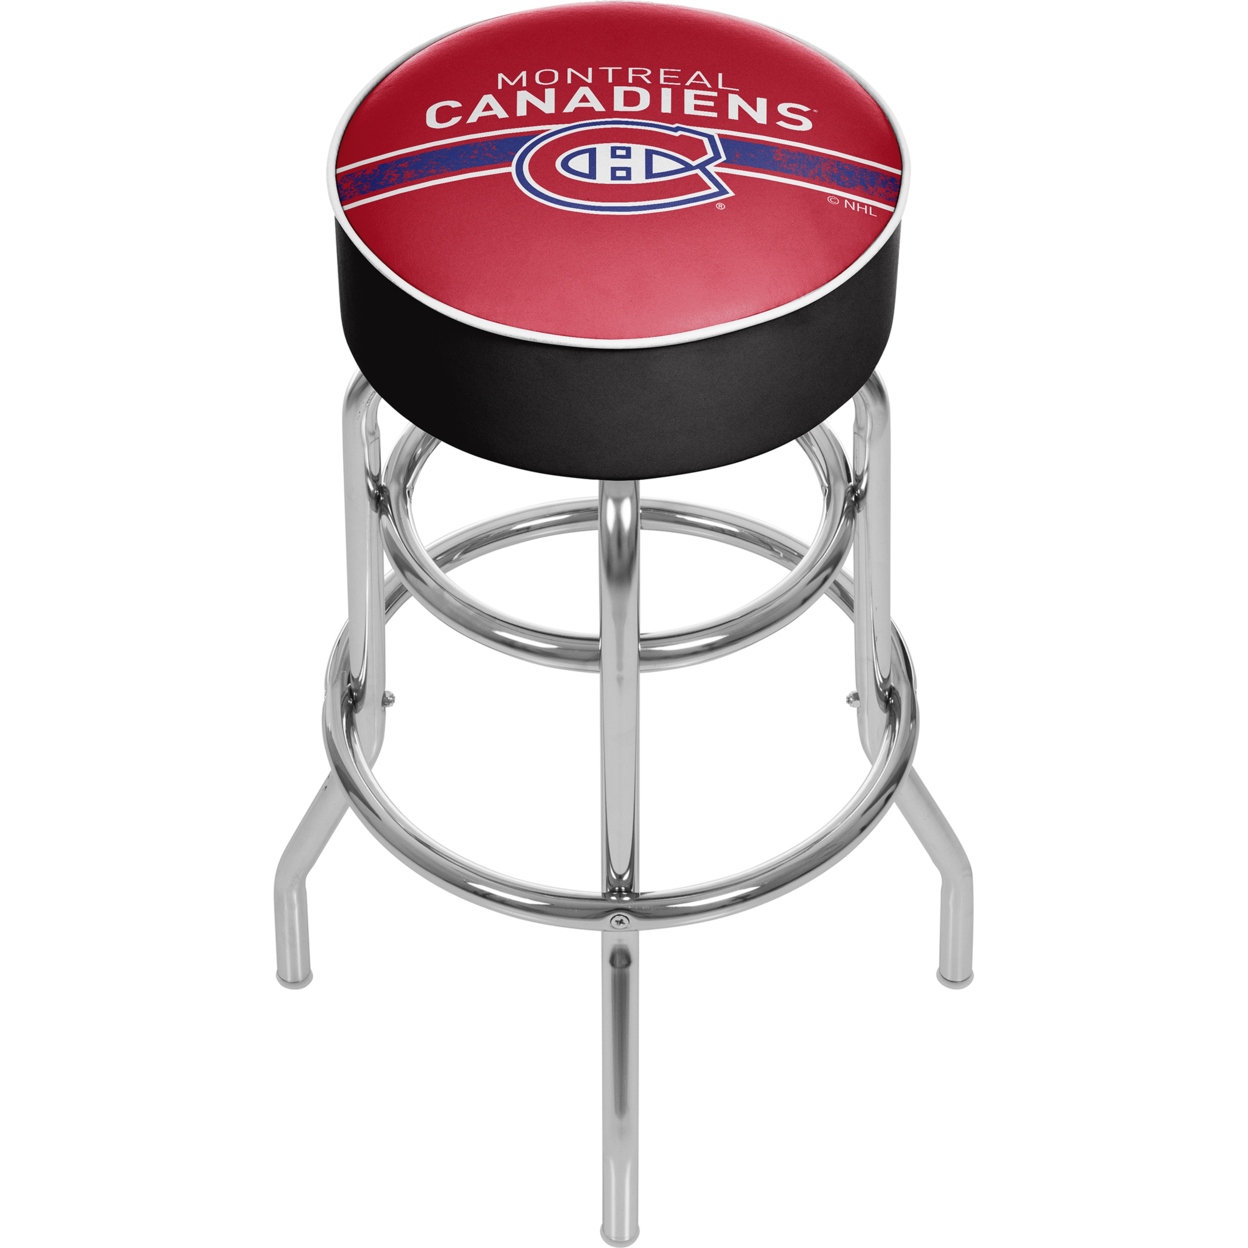 NHL Chrome Padded Swivel Bar Stool 30 Inches High - Montreal Canadiens футболка tom tailor denim 1037800 00 71 6593